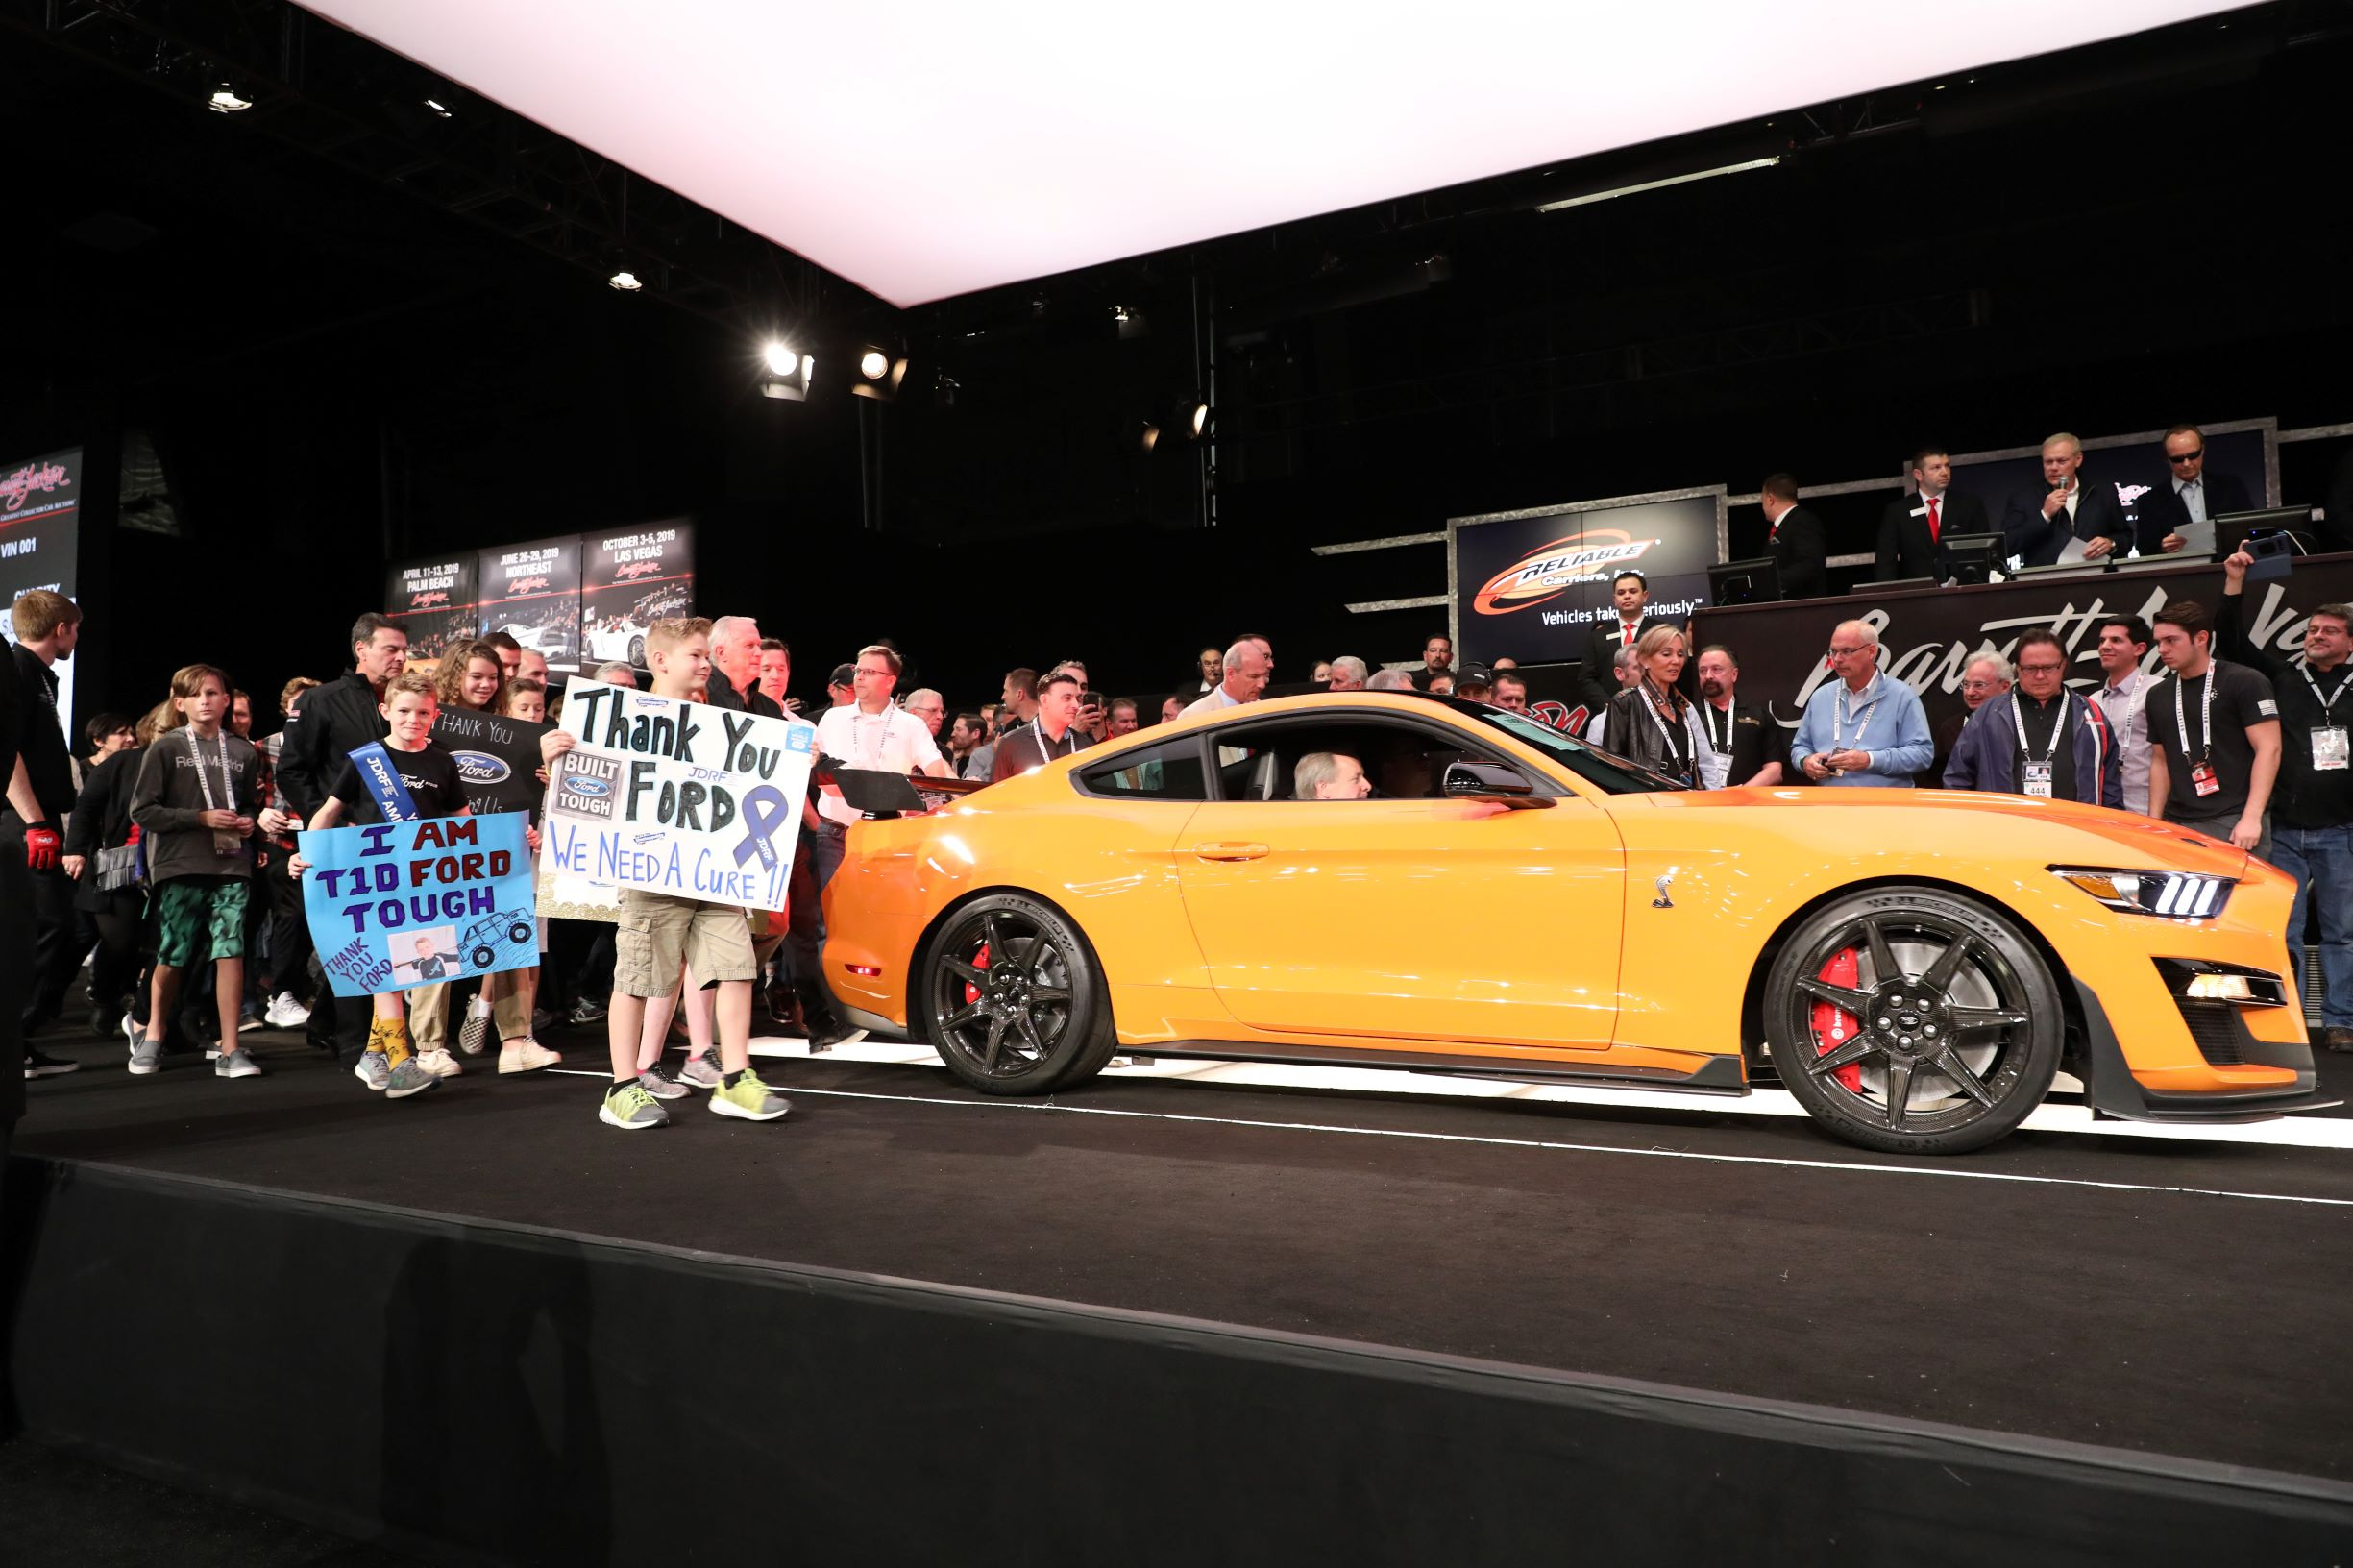 2020 Ford Mustang Shelby GT500 VIN 001 (Lot #3008), which sold for $1.1 million to benefit JDRF - Barrett-Jackson Scottsdale